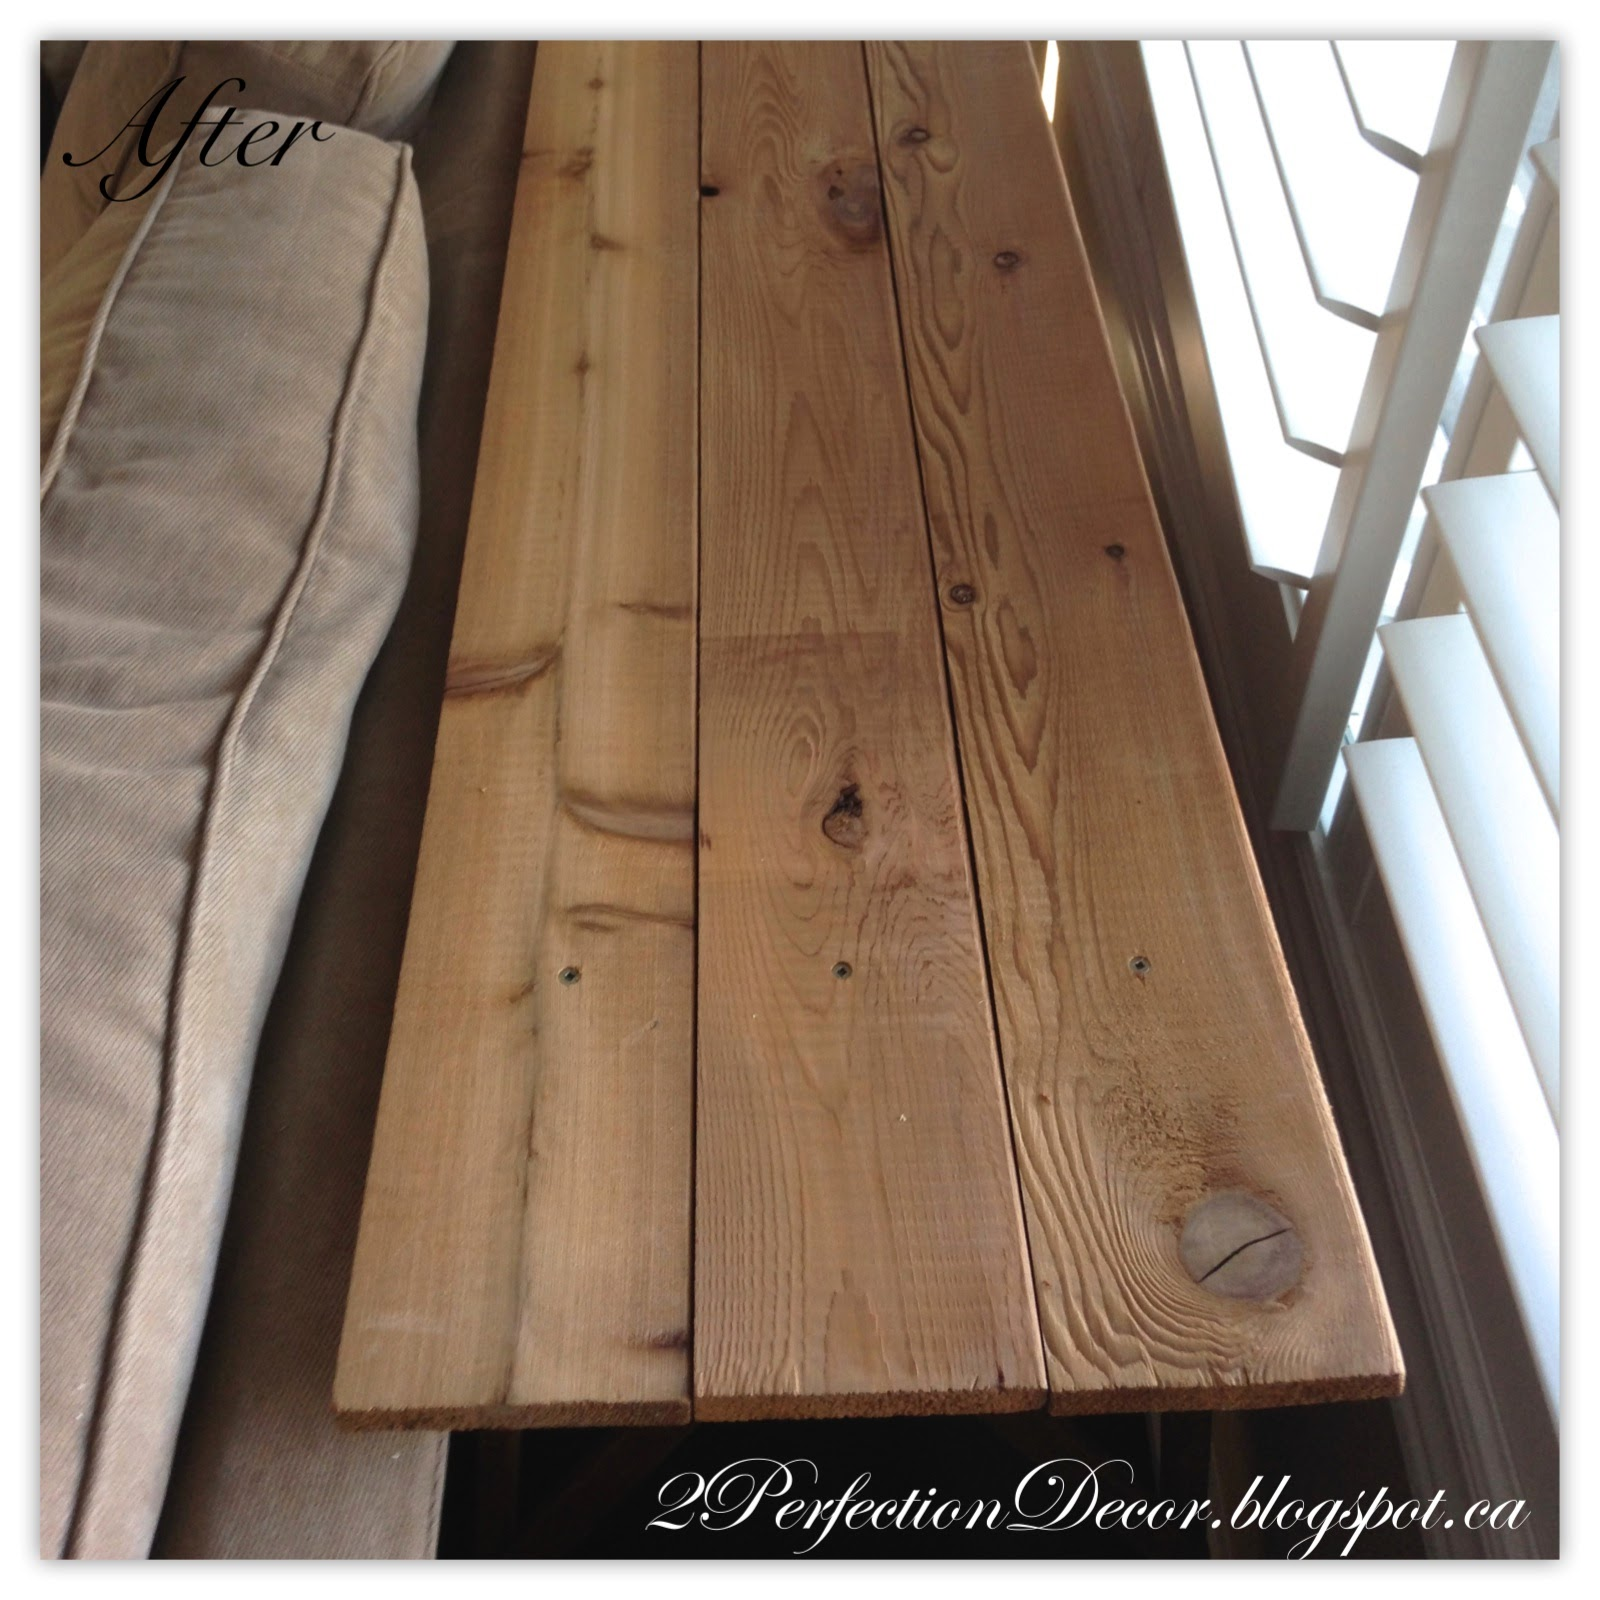 How to make a sofa table out of floor boards - Next Came Evening Out The Ironing Board Base With Some Thin Wood Shims To Make The Planks Sit Nice And Even